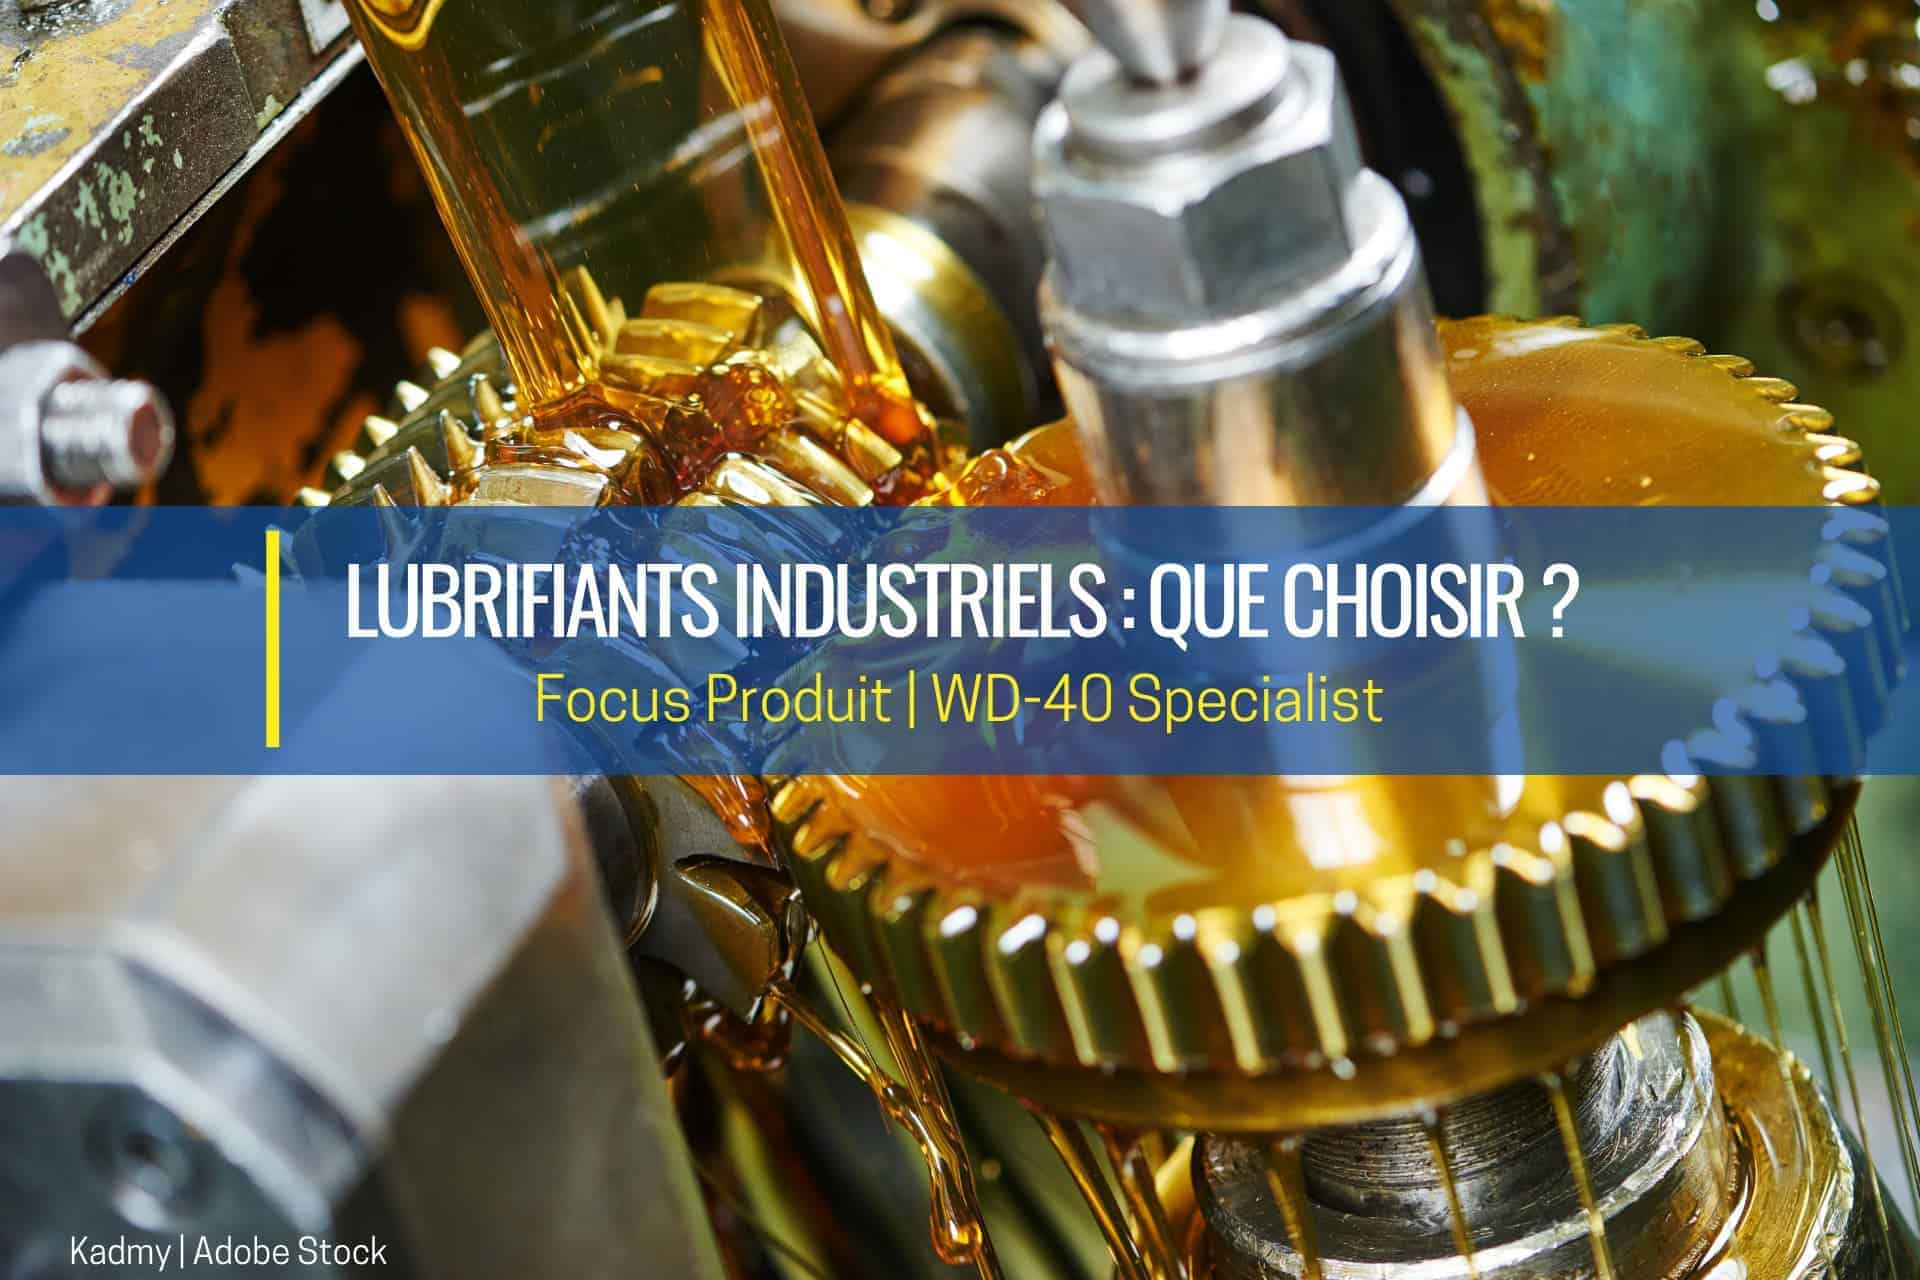 lubrifiants industriels